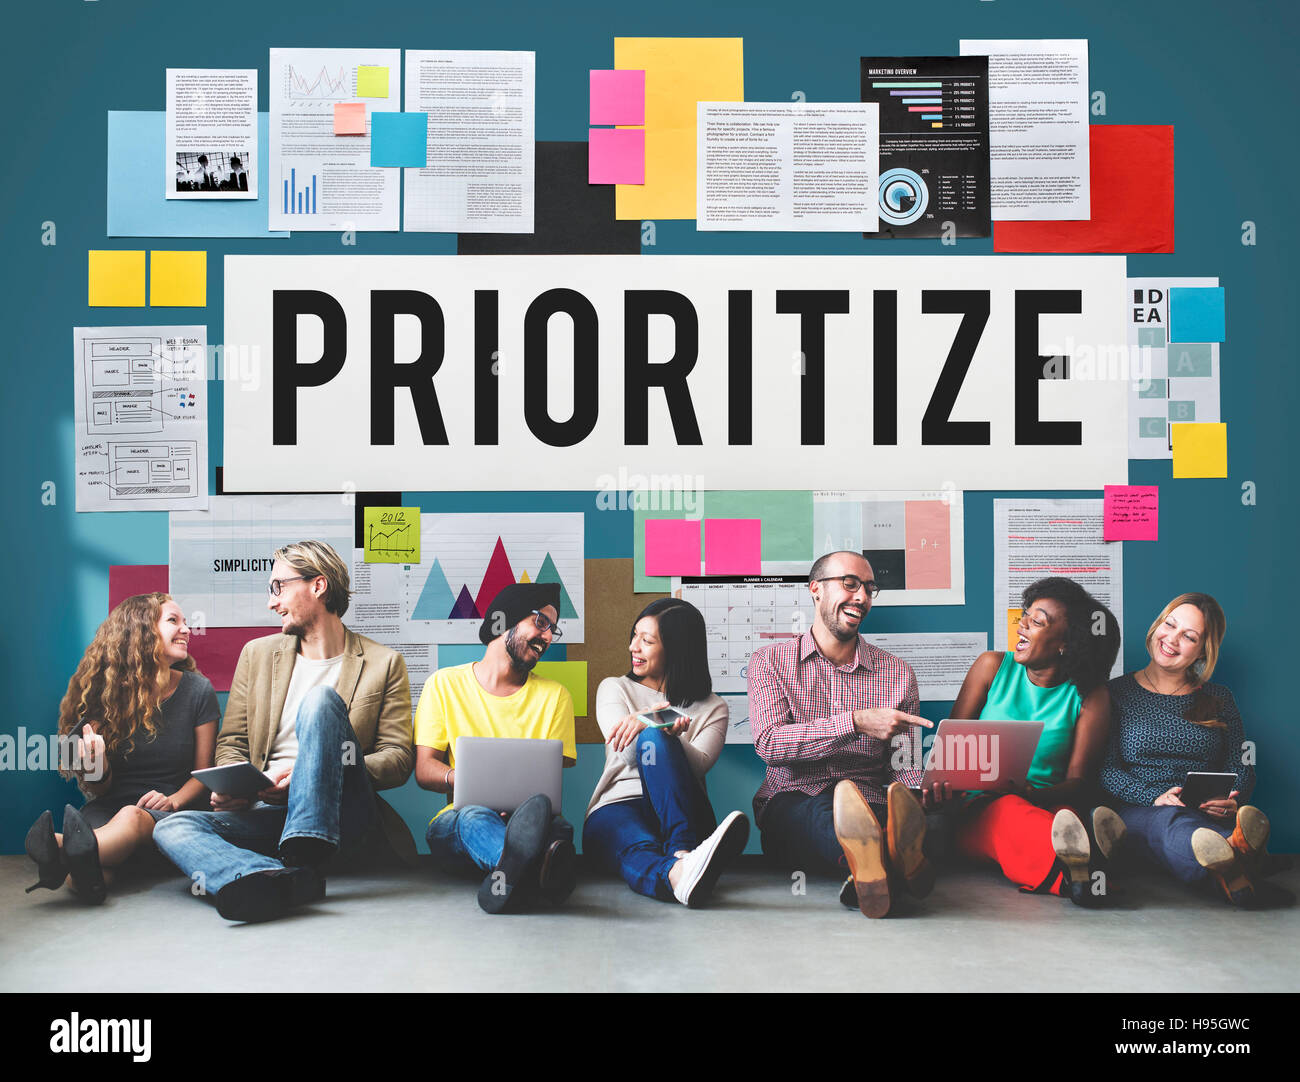 Prioritize Efficiency Expedite Importance Issues Concept - Stock Image